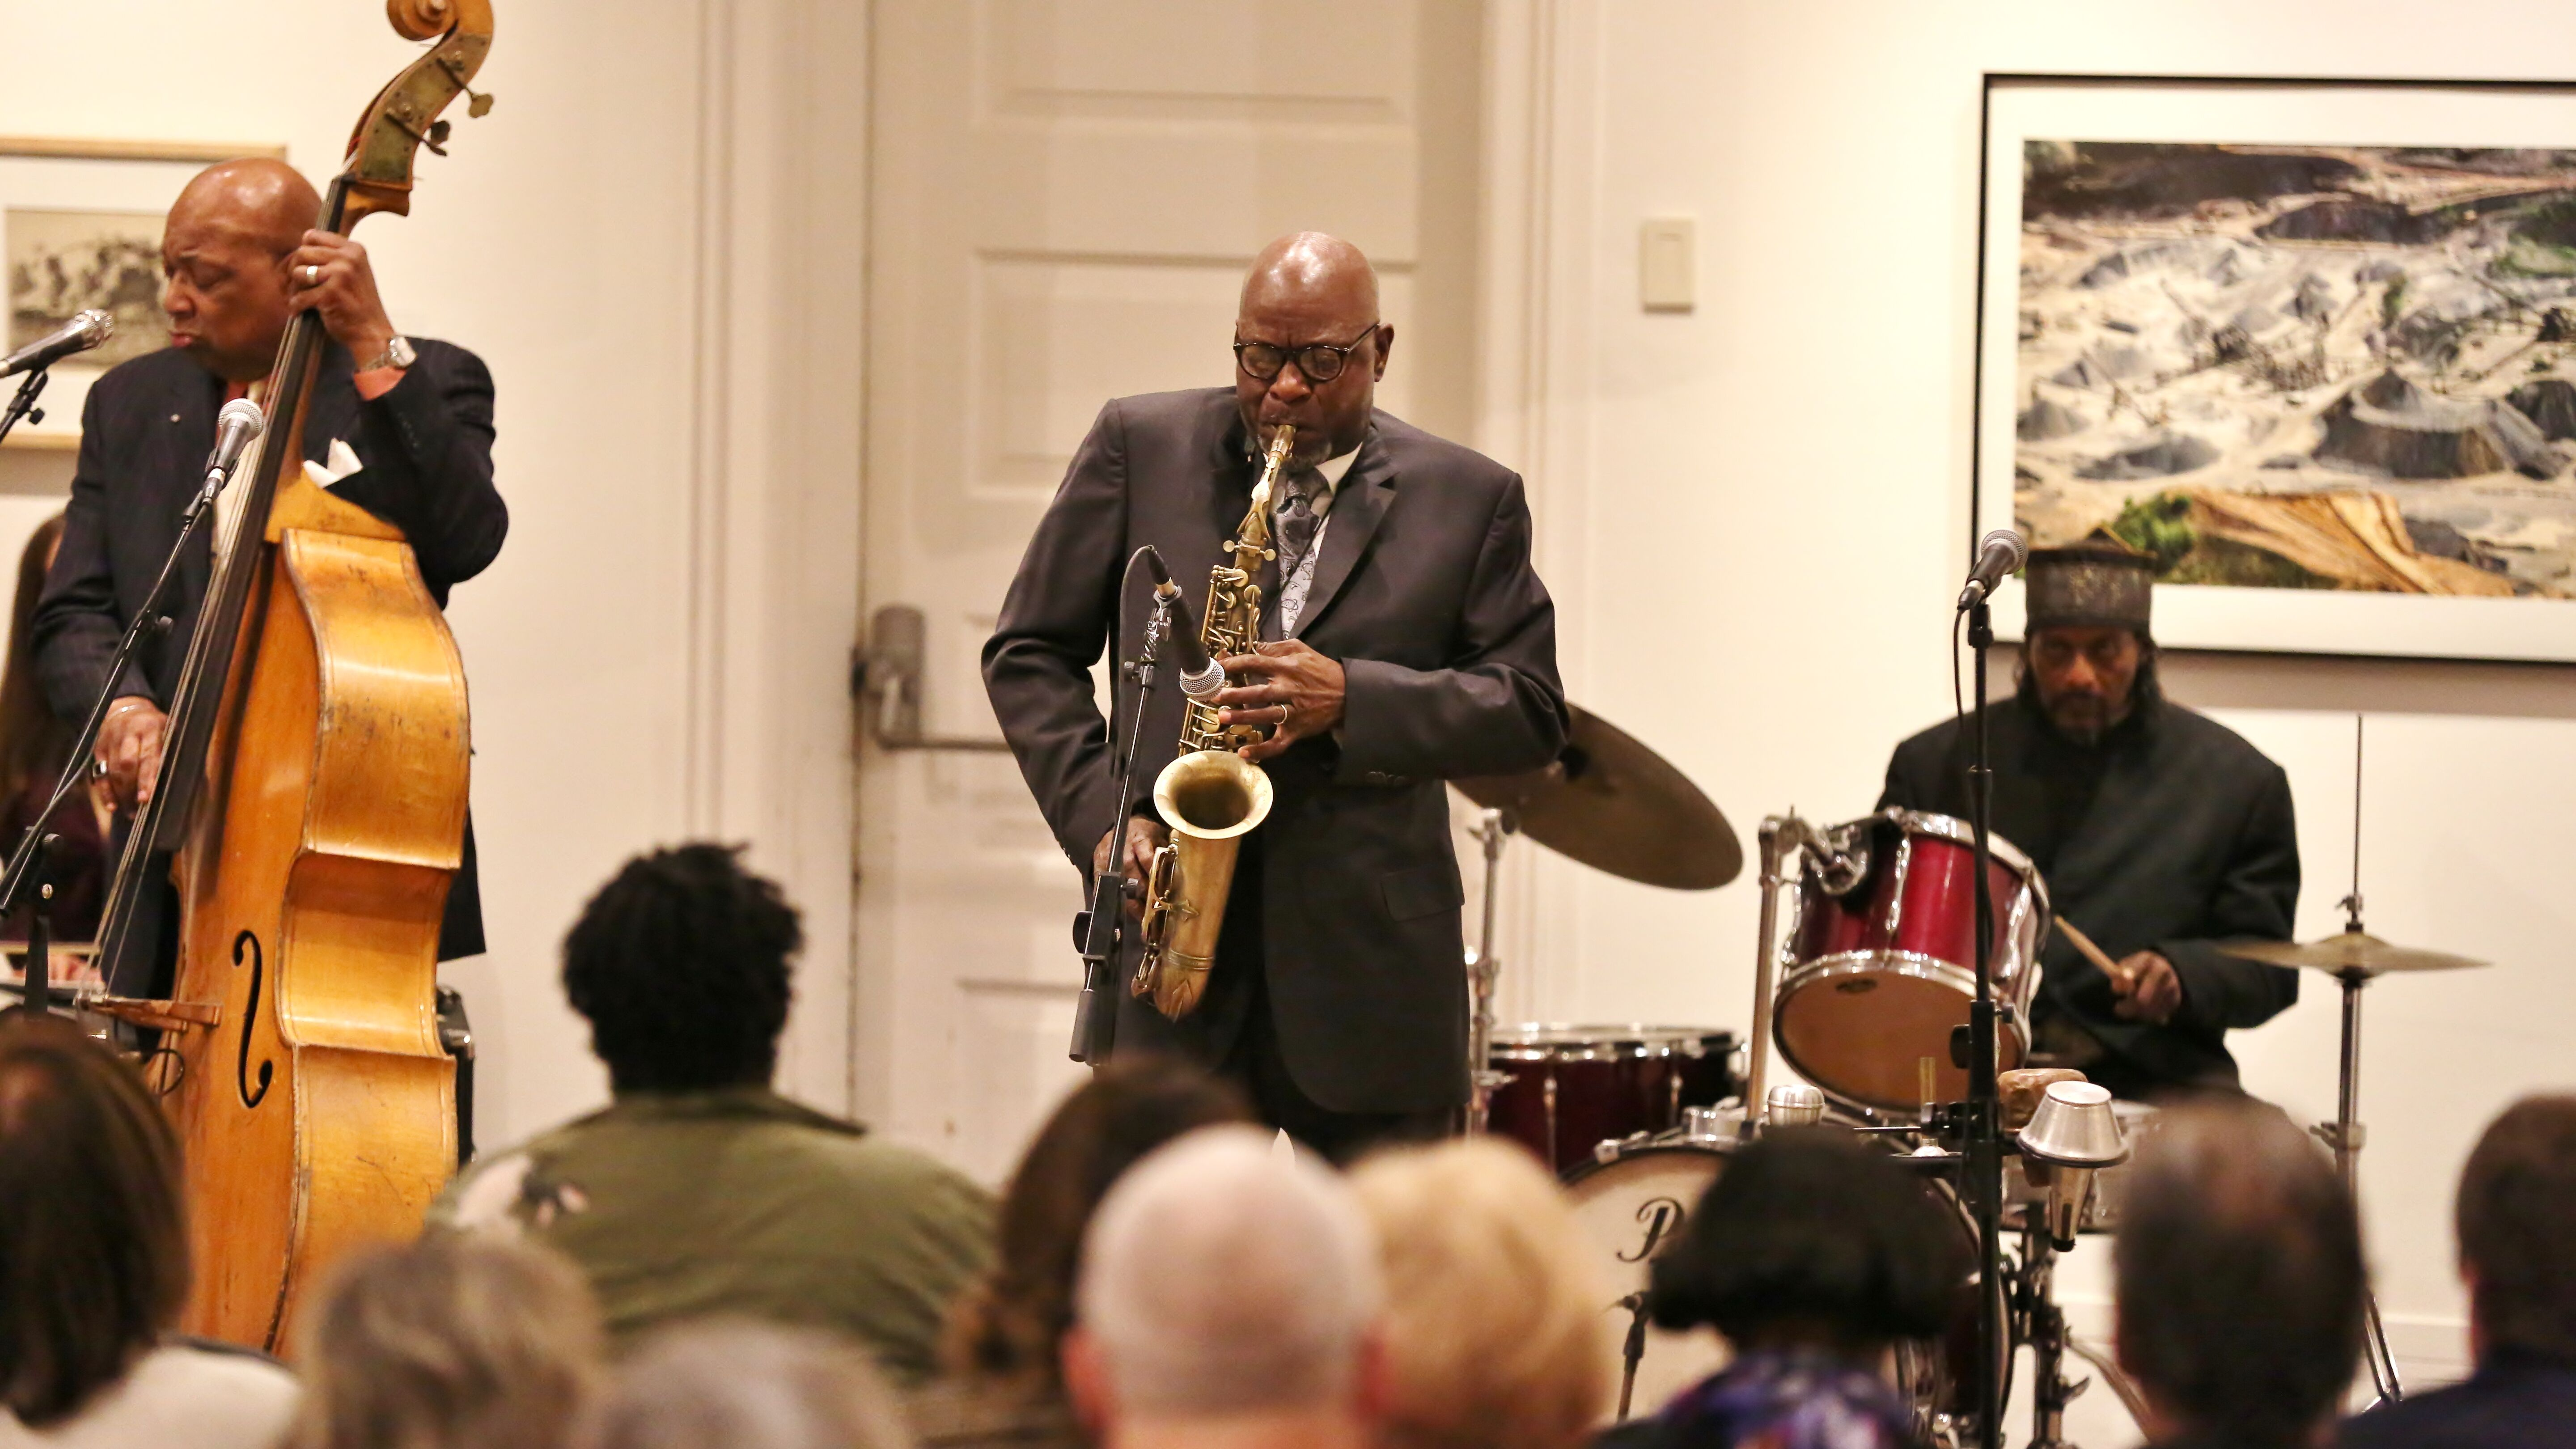 Music at Woodmere - Music of B.B. King and Muddy Waters - Session 1 Image